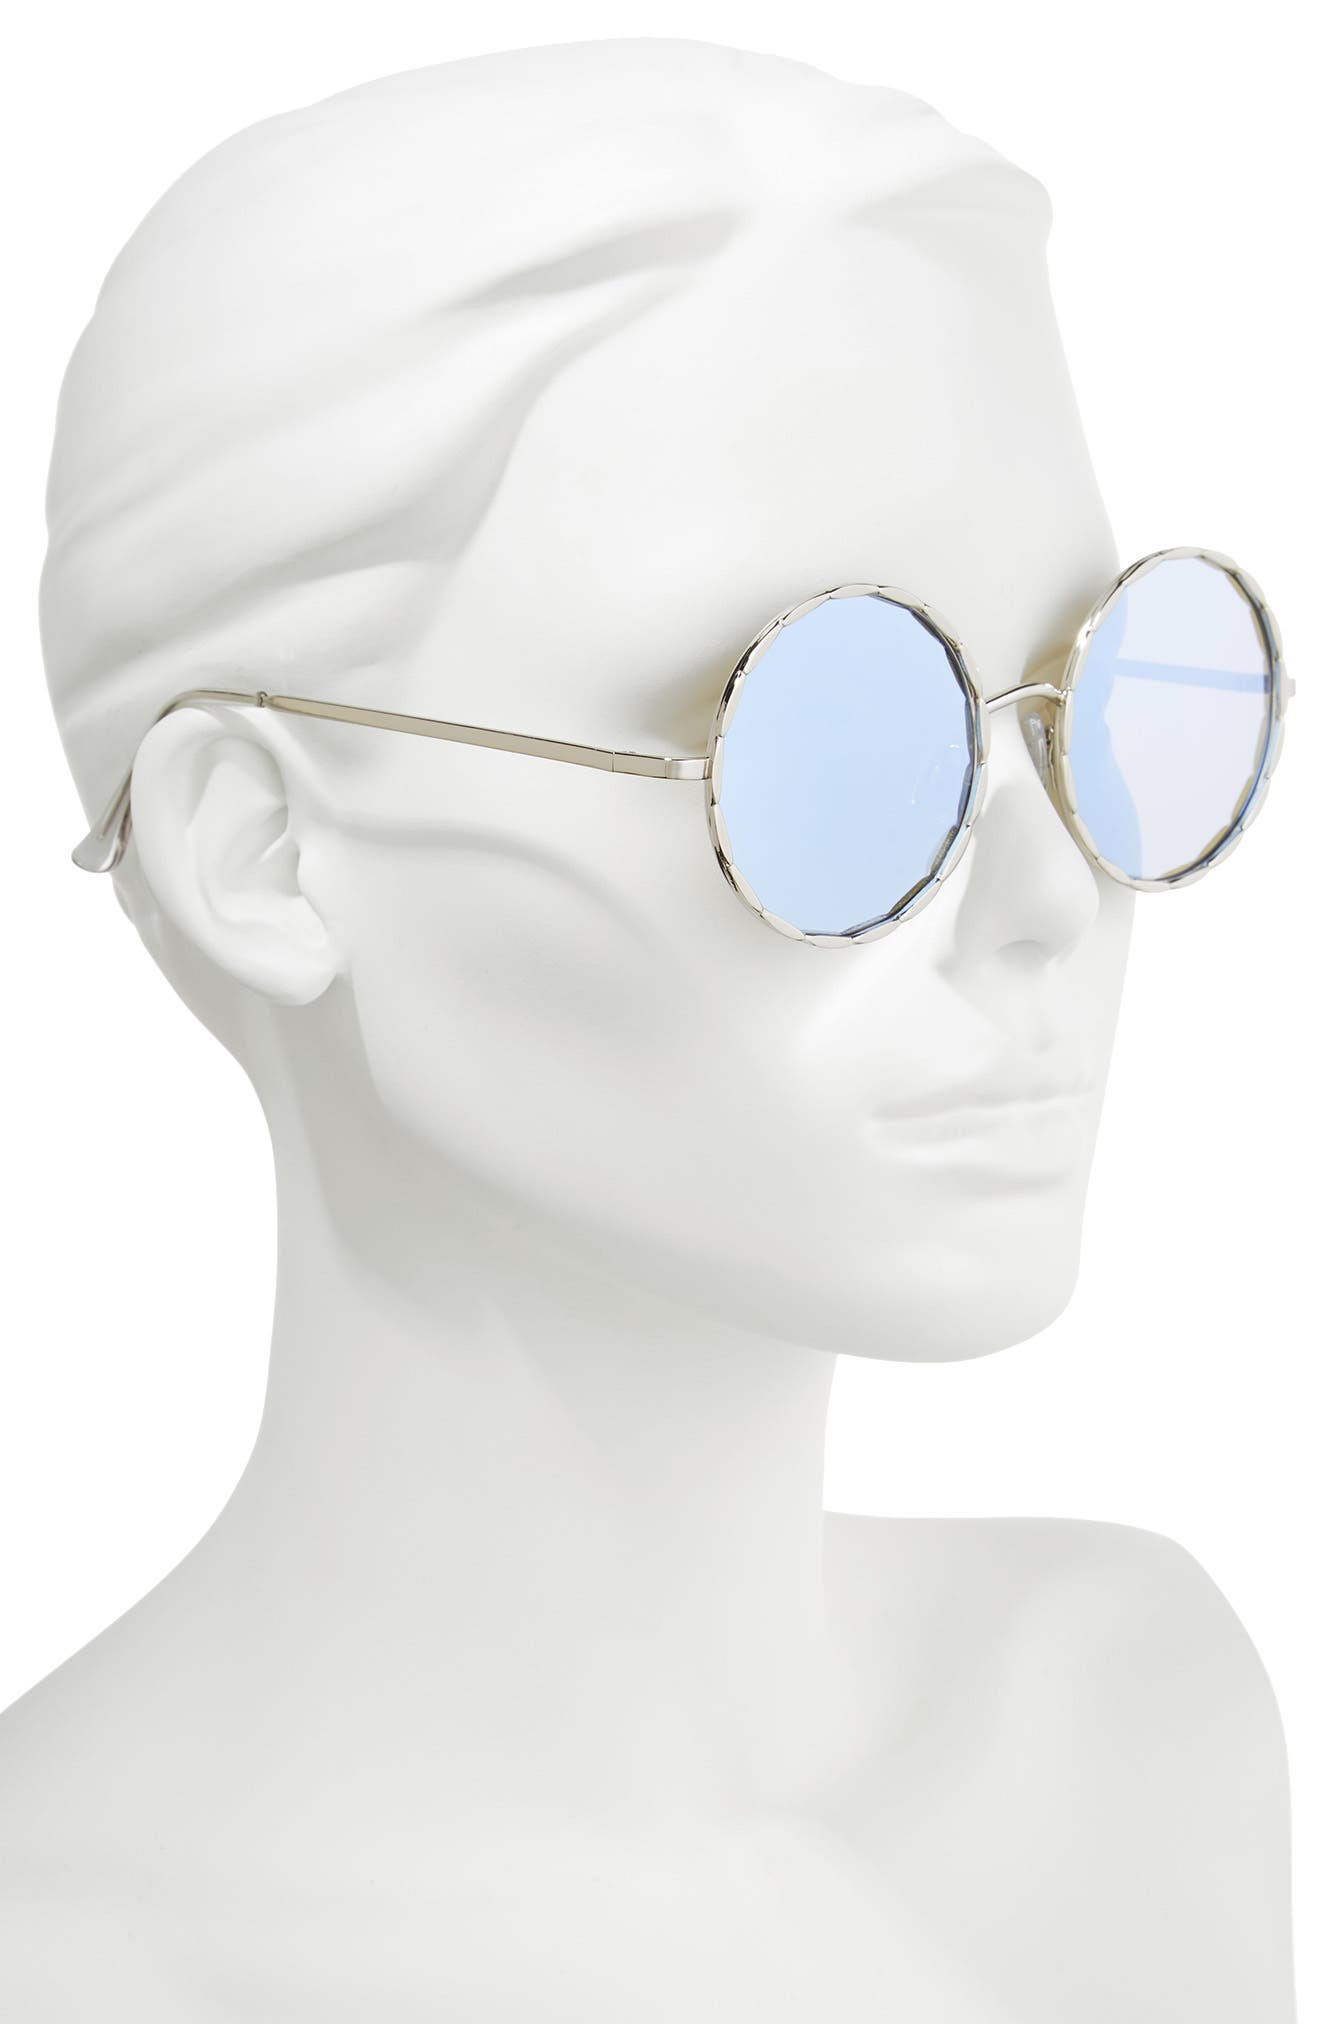 58mm Textured Round Sunglasses,                             Alternate thumbnail 2, color,                             040